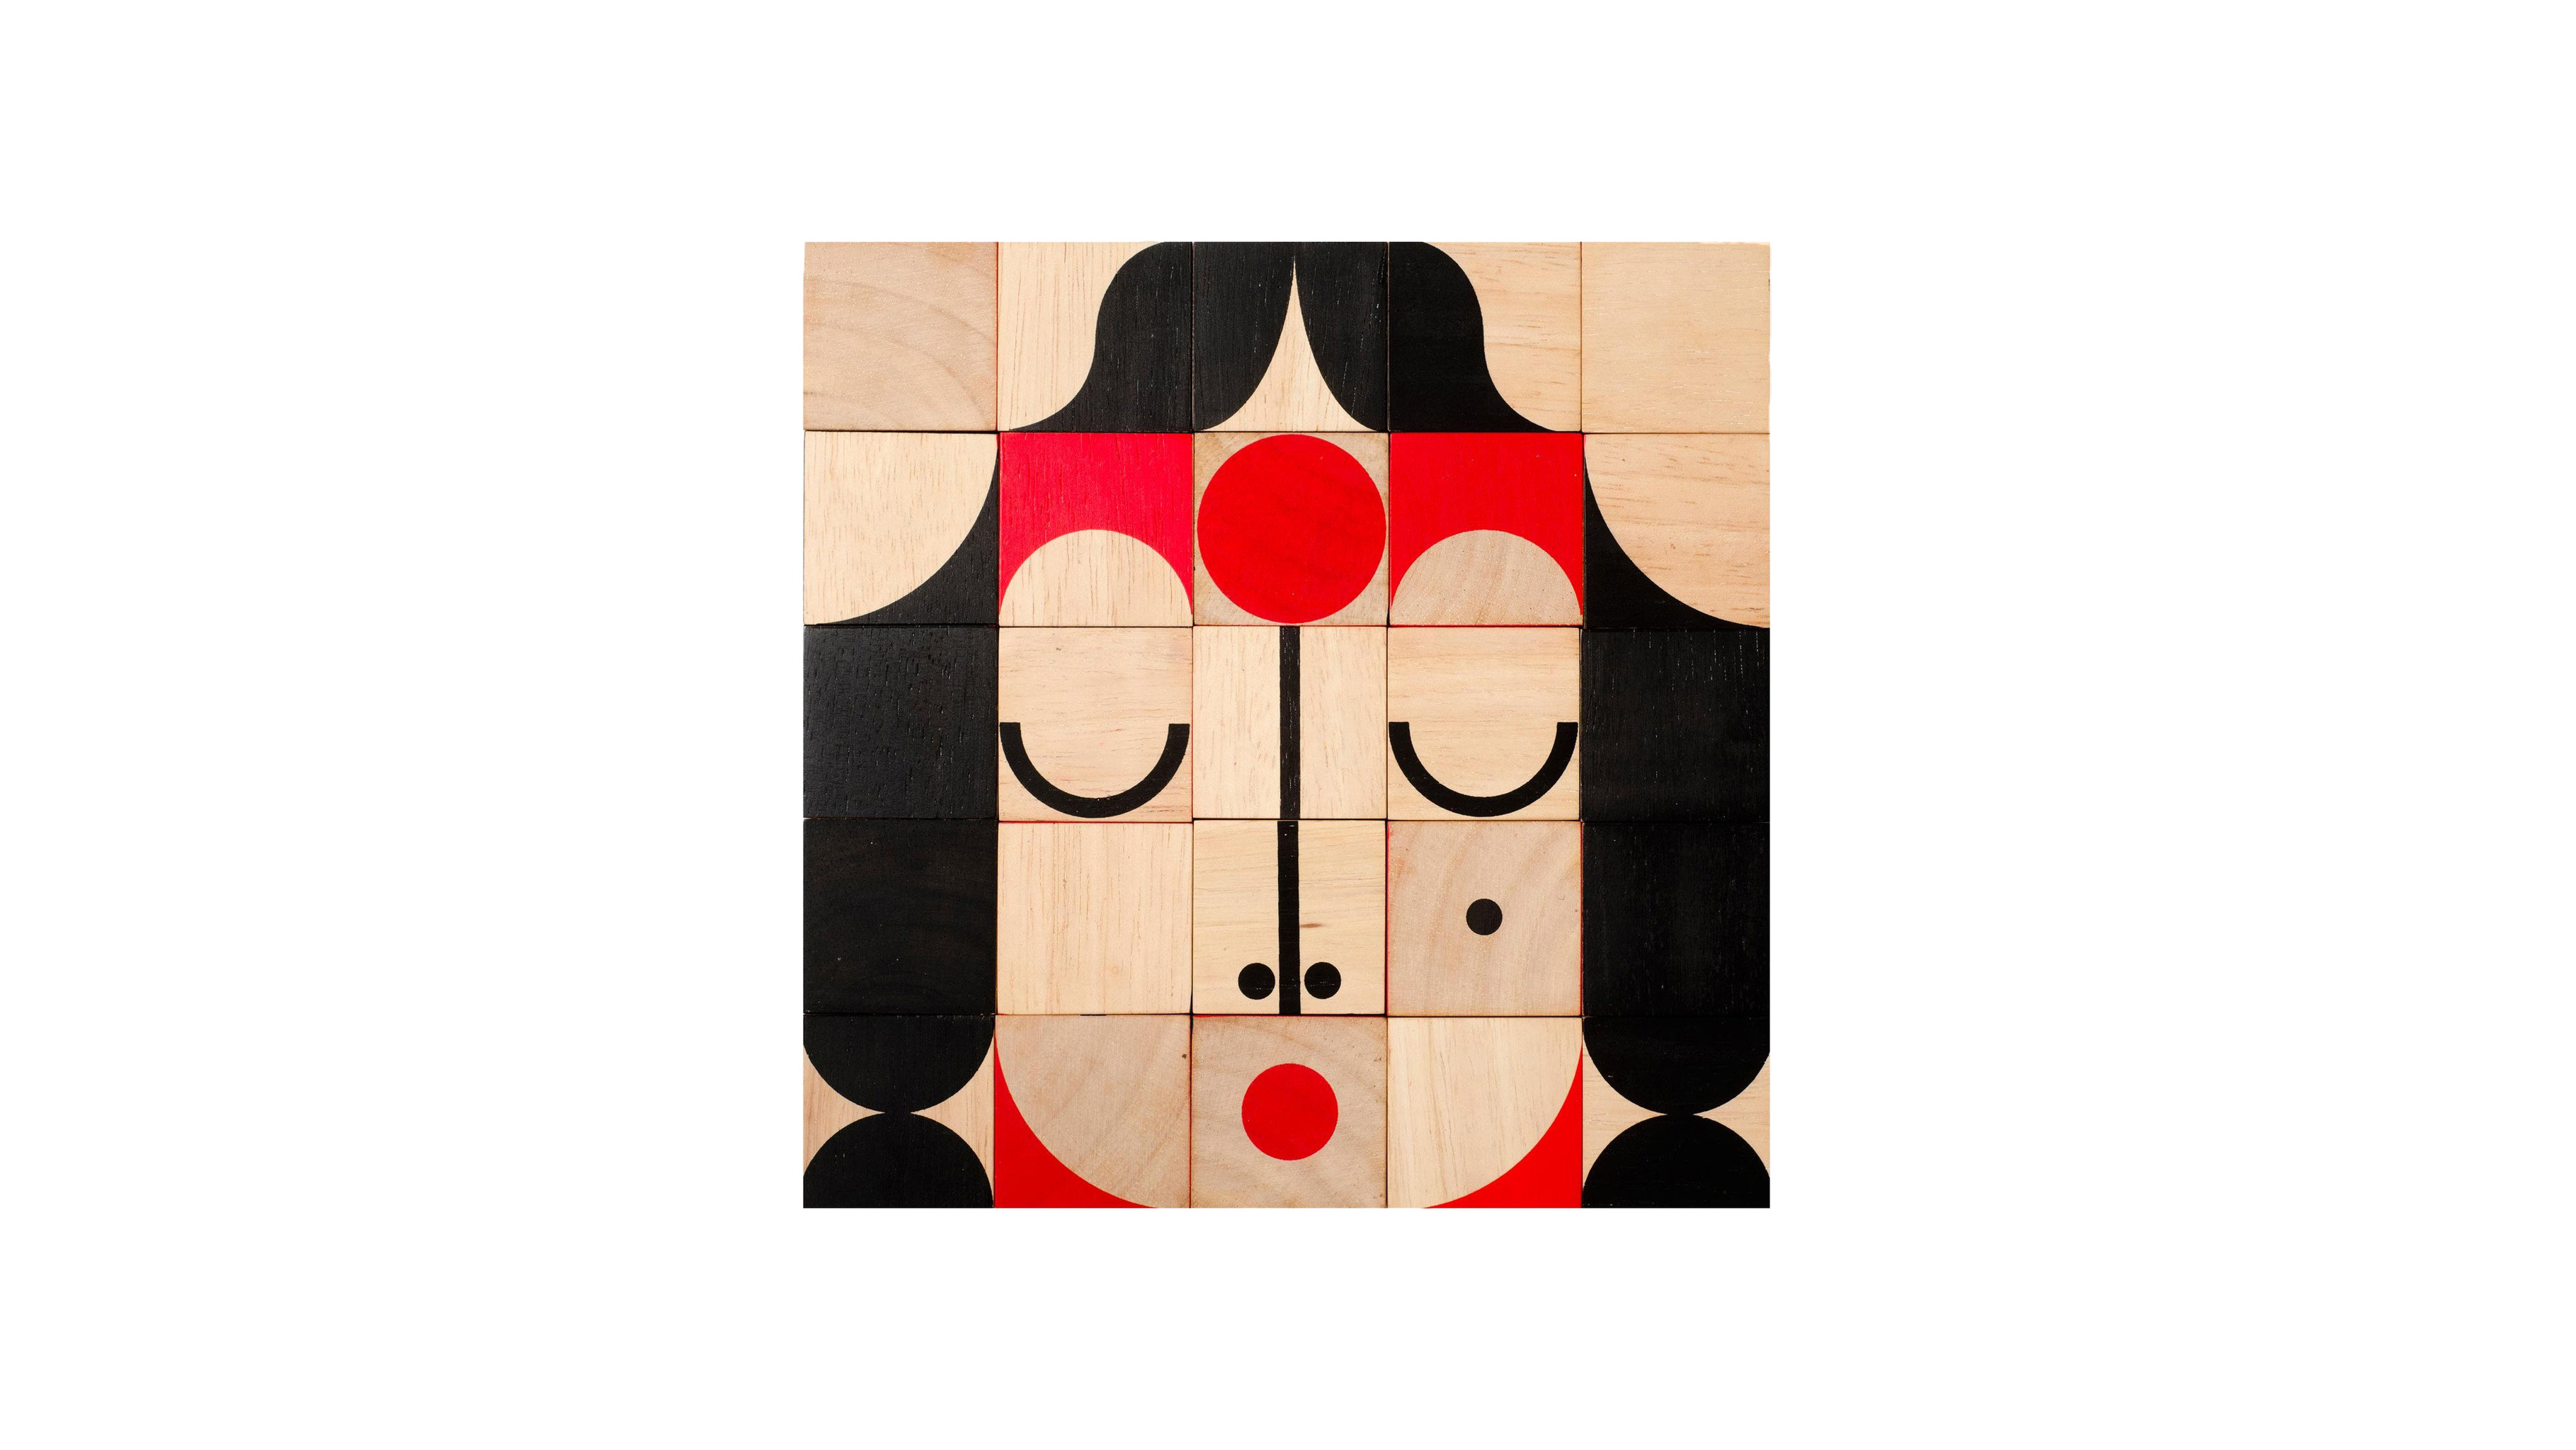 facemaker-rubberwood-blocks-by-miller-goodman